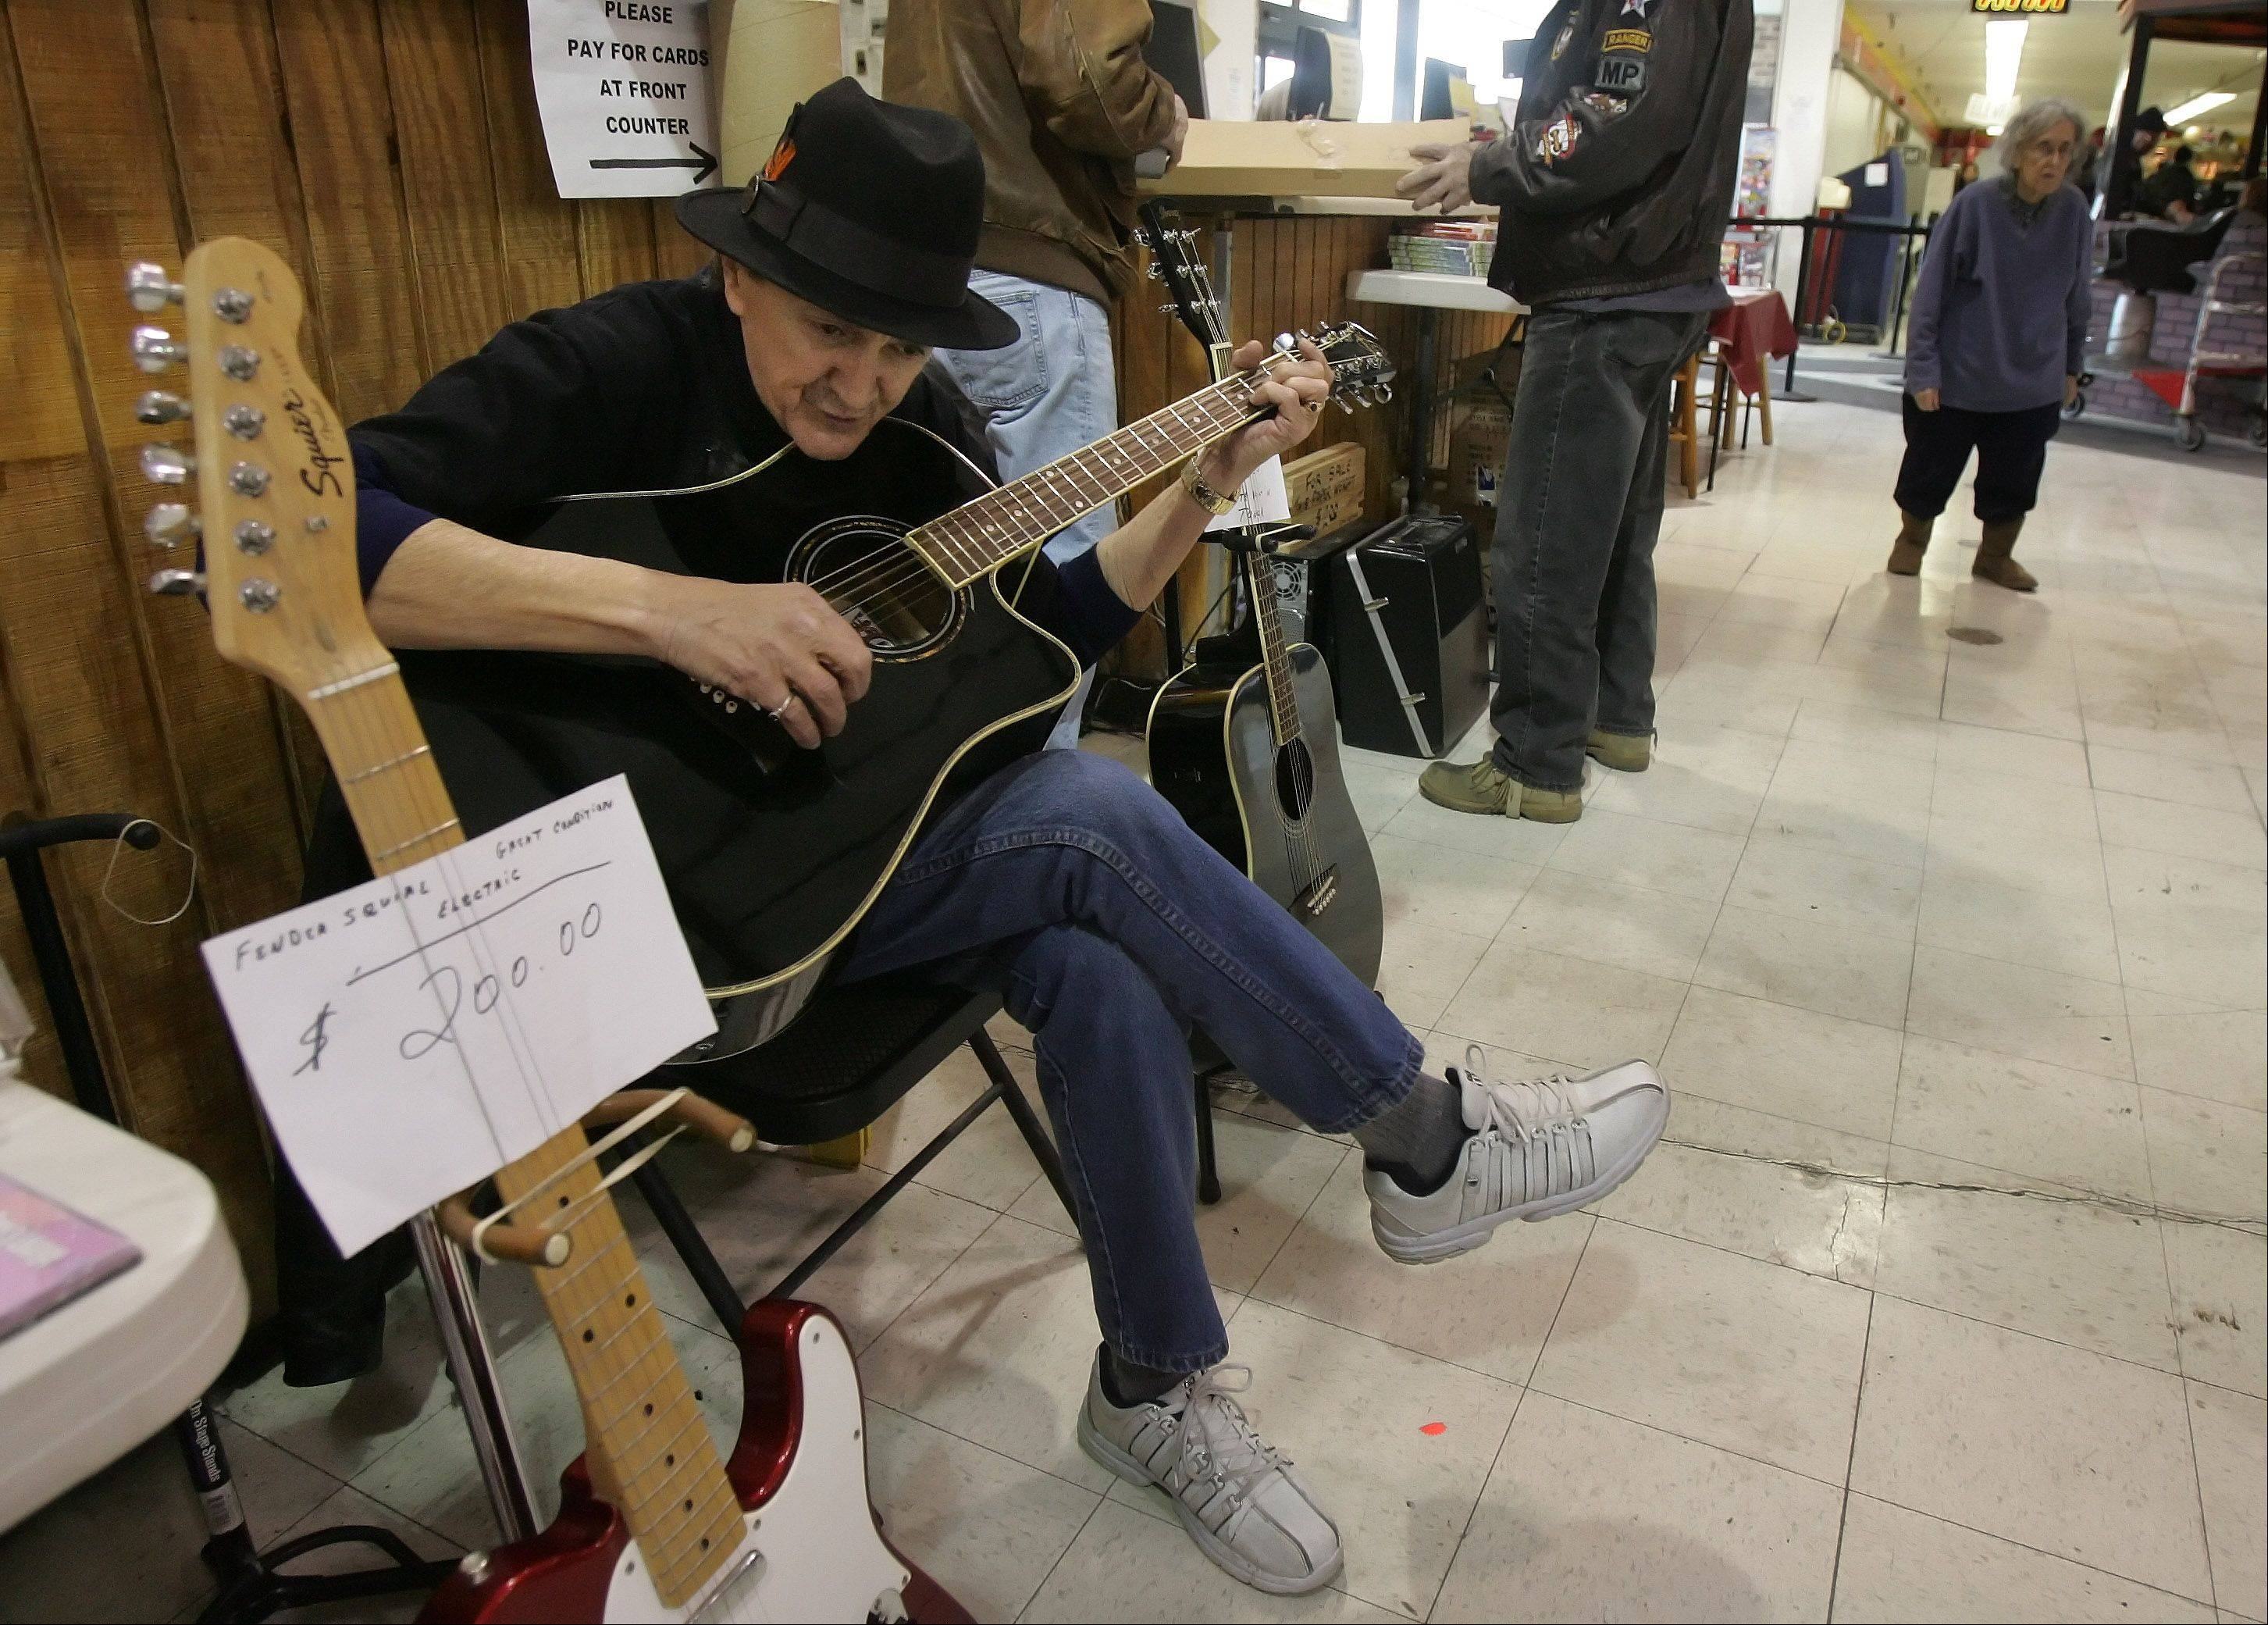 Noel Rivera, of Arlington Heights, entertains with his guitar as customers check out the deals at Wolff's Flea Market in Palatine. The indoor location is open every Saturday and Sunday from 8:00 a.m. - 4:00 p.m.